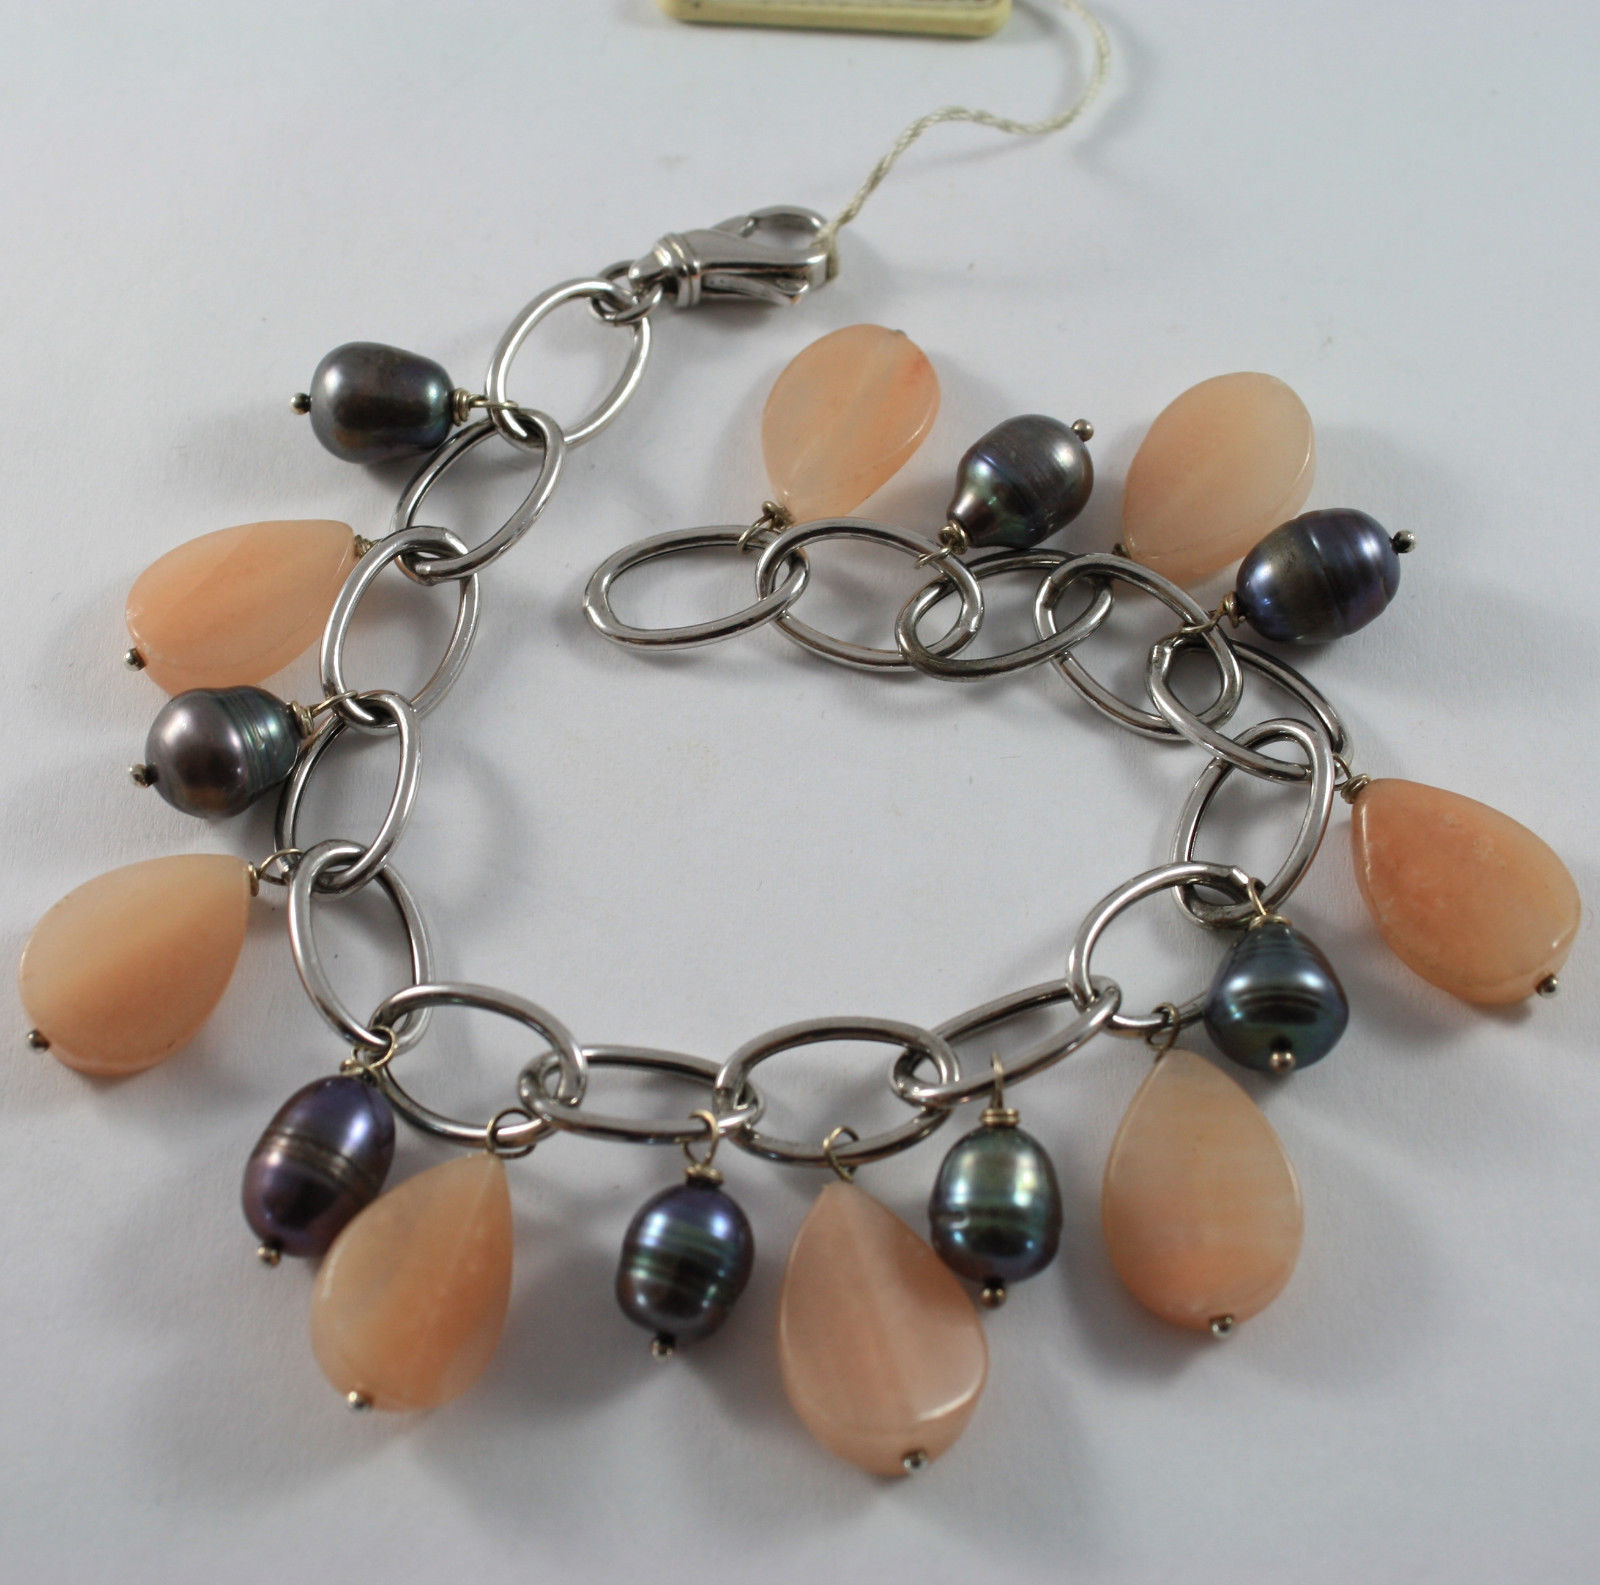 .925 RHODIUM SILVER BRACELET WITH ROSE JADE AND GRAY PEARLS